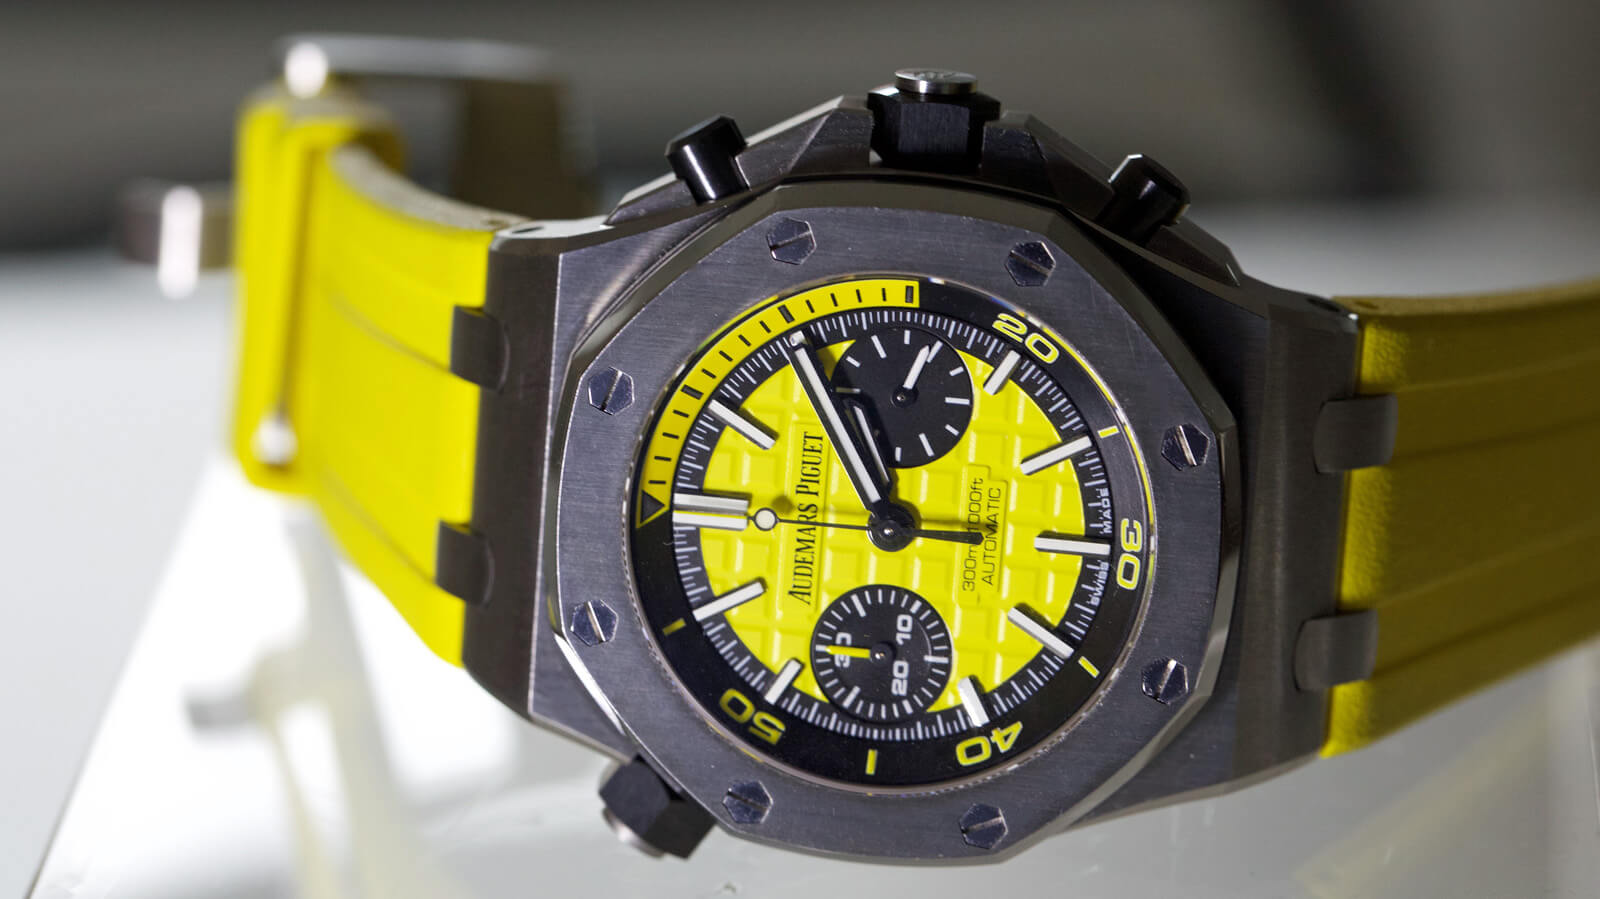 Image of Audemars Piguet Royal Oak Offshore Diver Chronograph with yellow strap - SIHH 2016 novelty